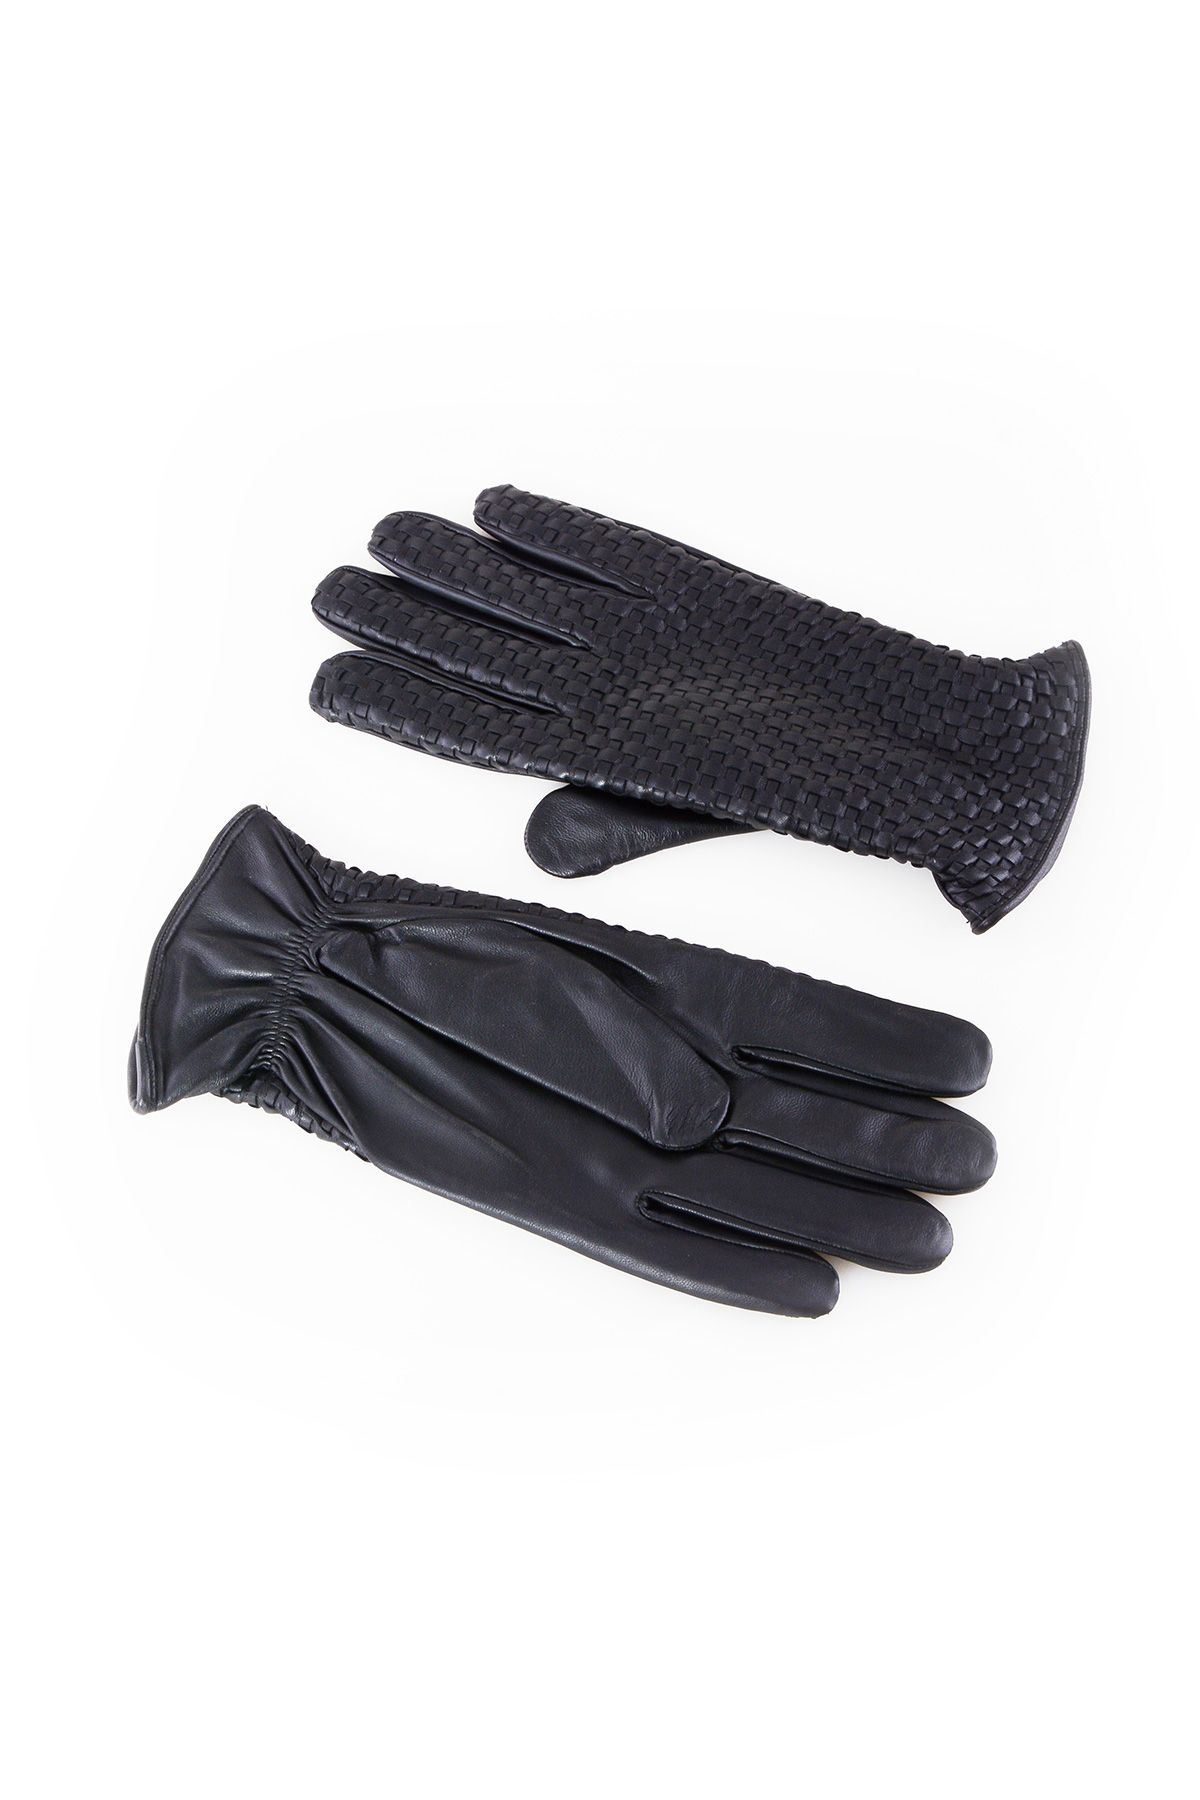 Pegia Men's Braided Leather Gloves 19EE02 Black